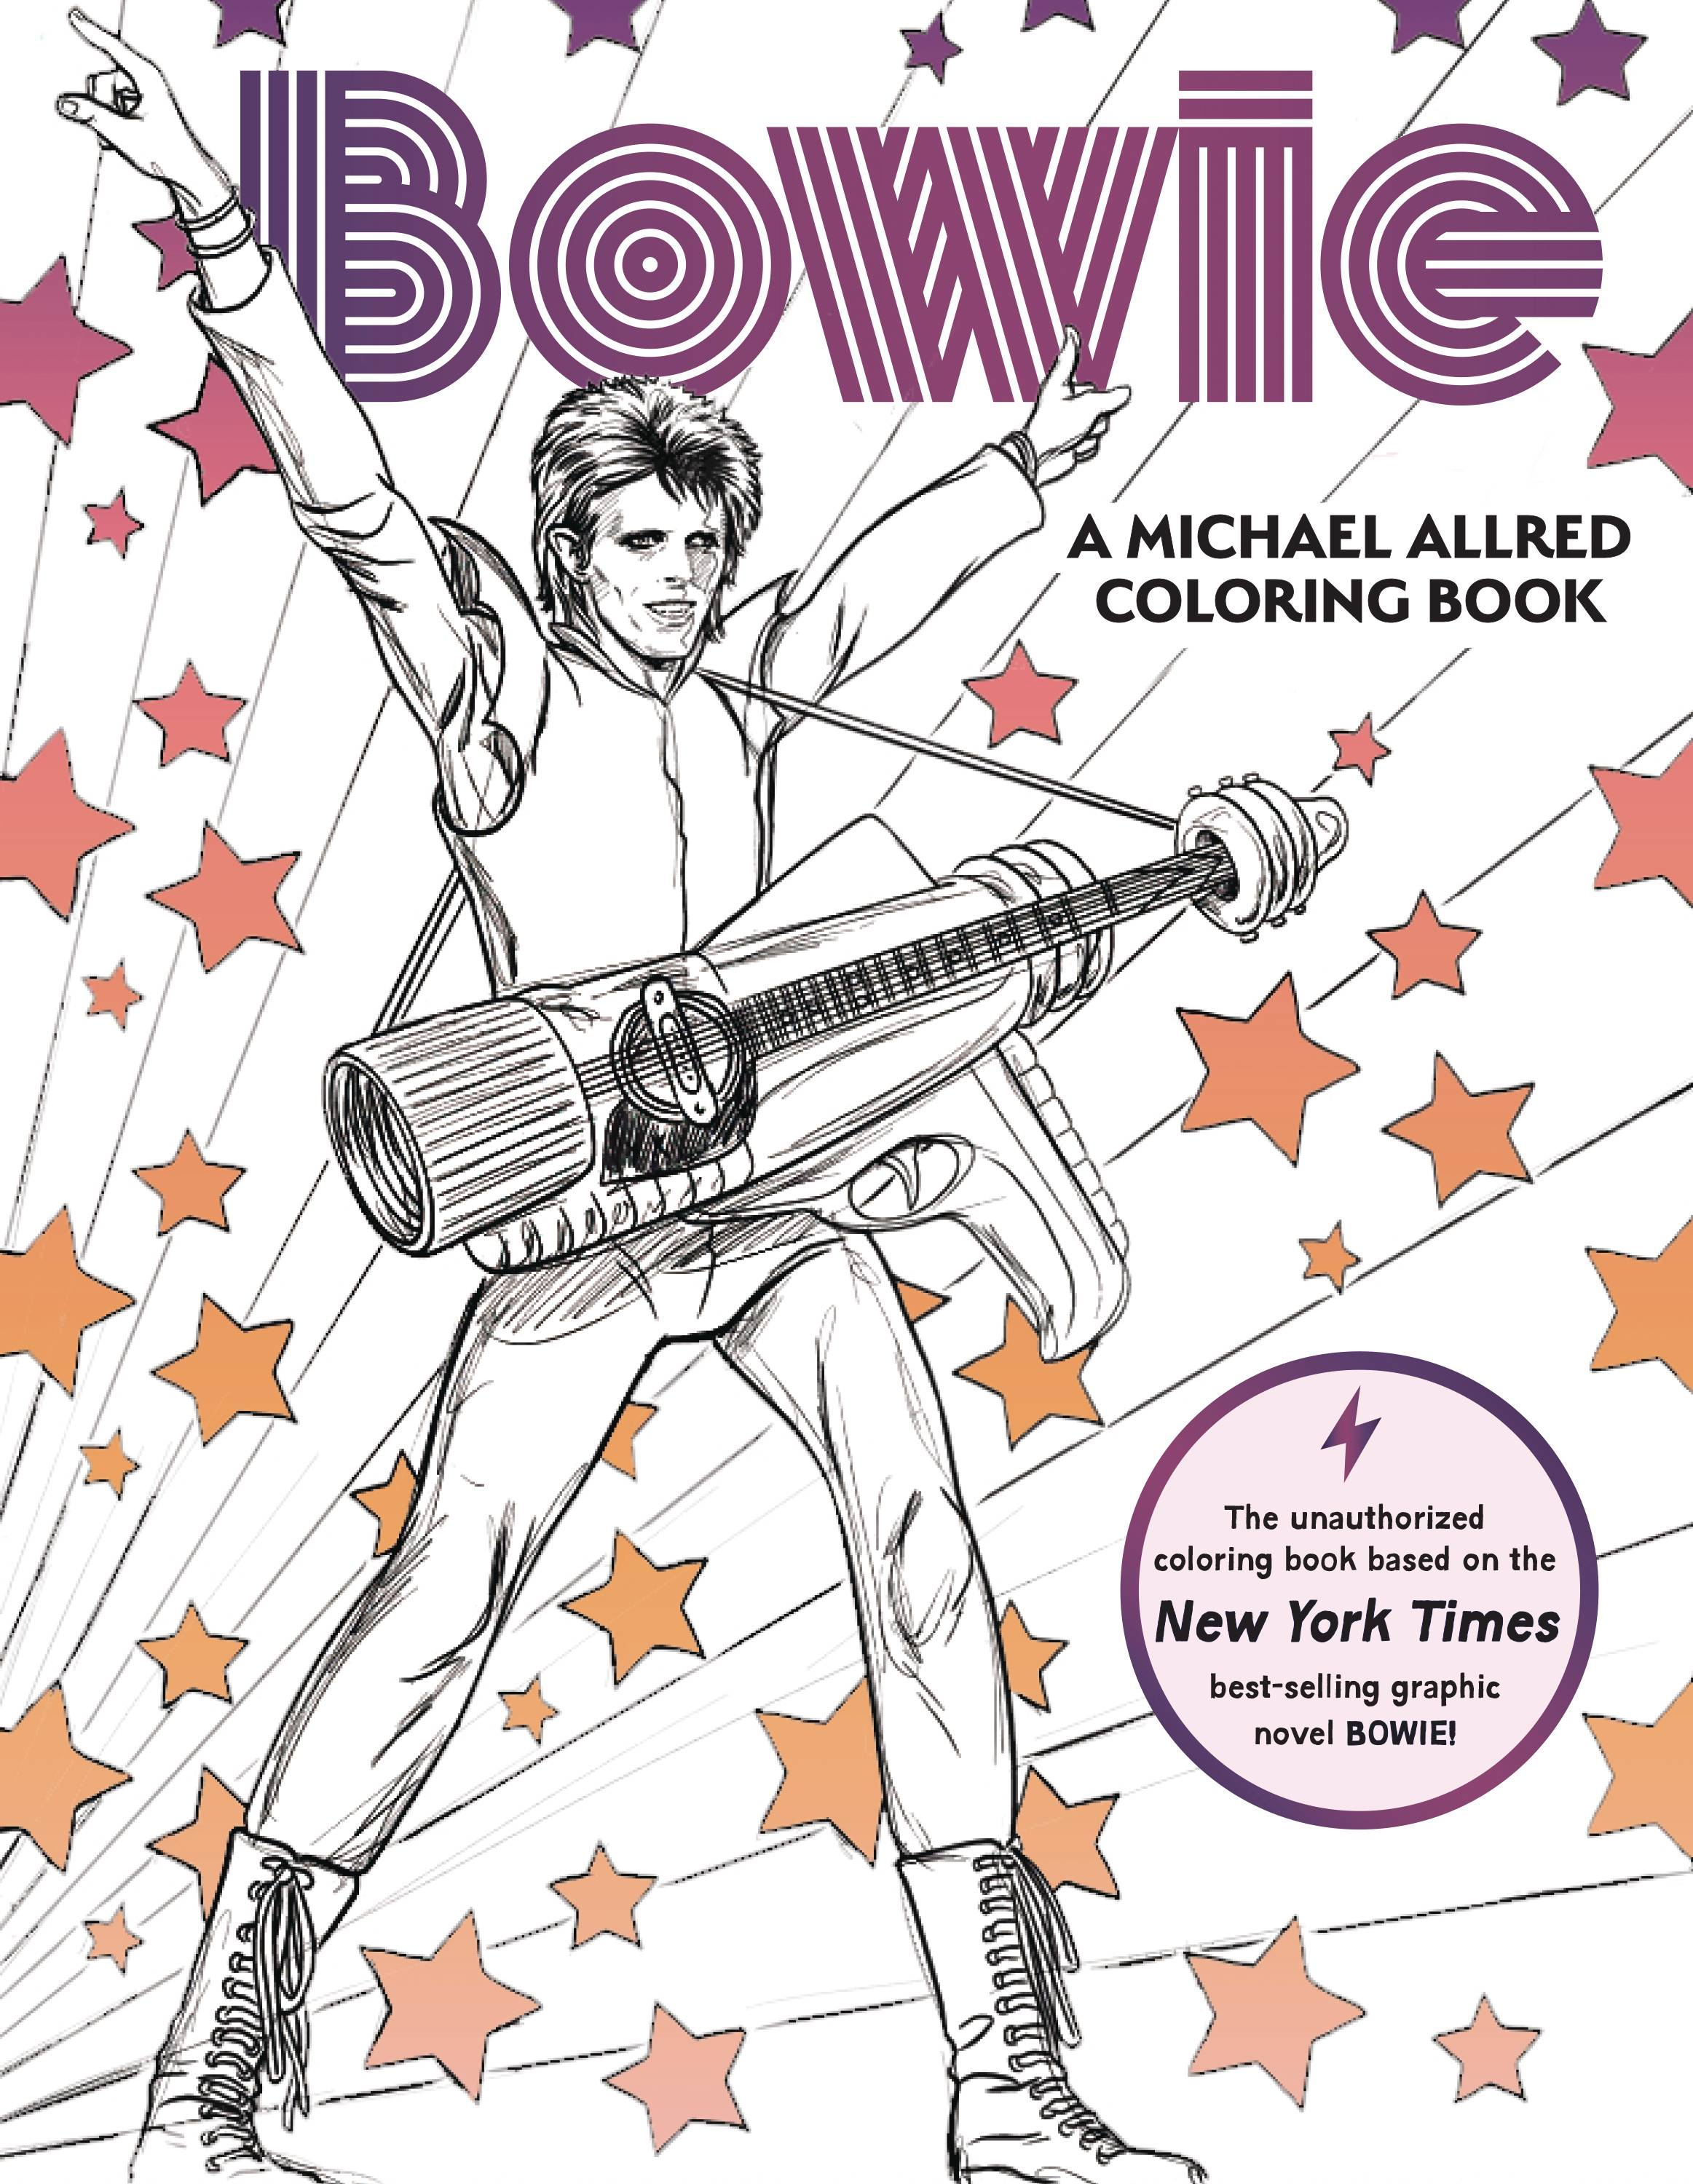 BOWIE ALLRED COLORING BOOK